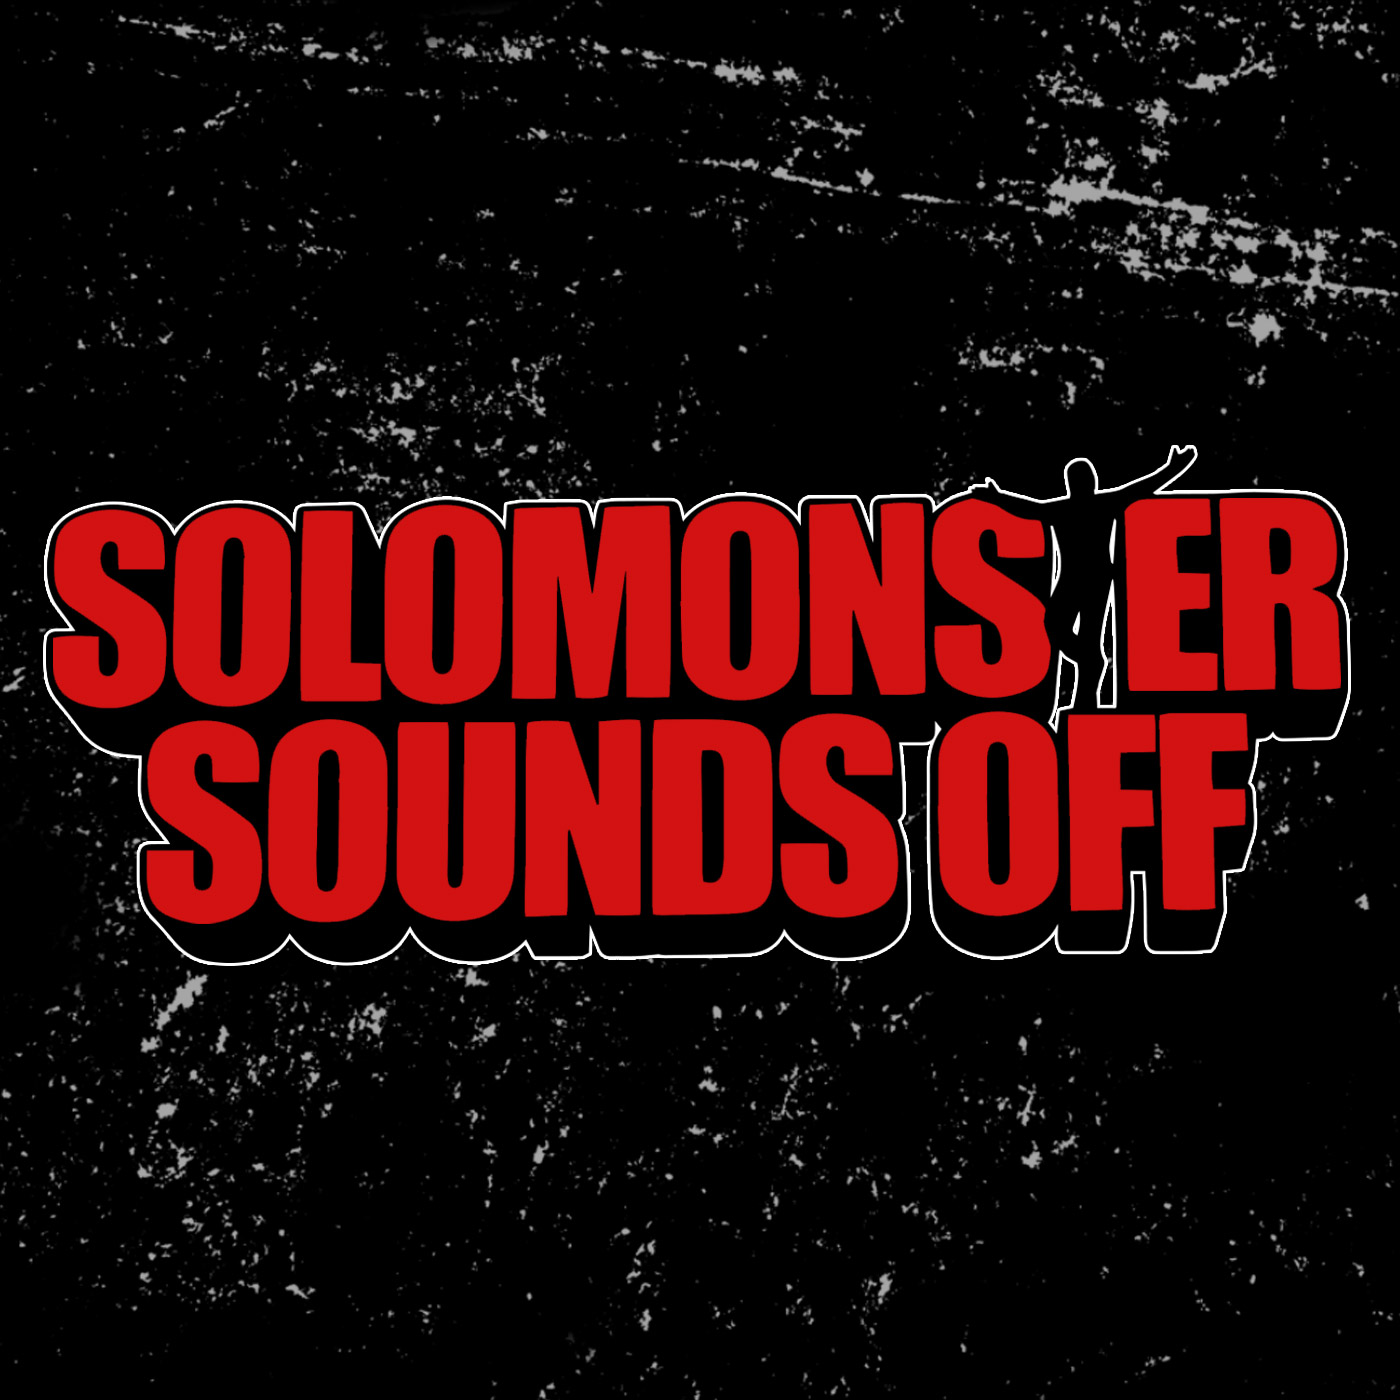 Sound Off 461 - IS WWE LOOKING TO PURCHASE TNA WRESTLING?